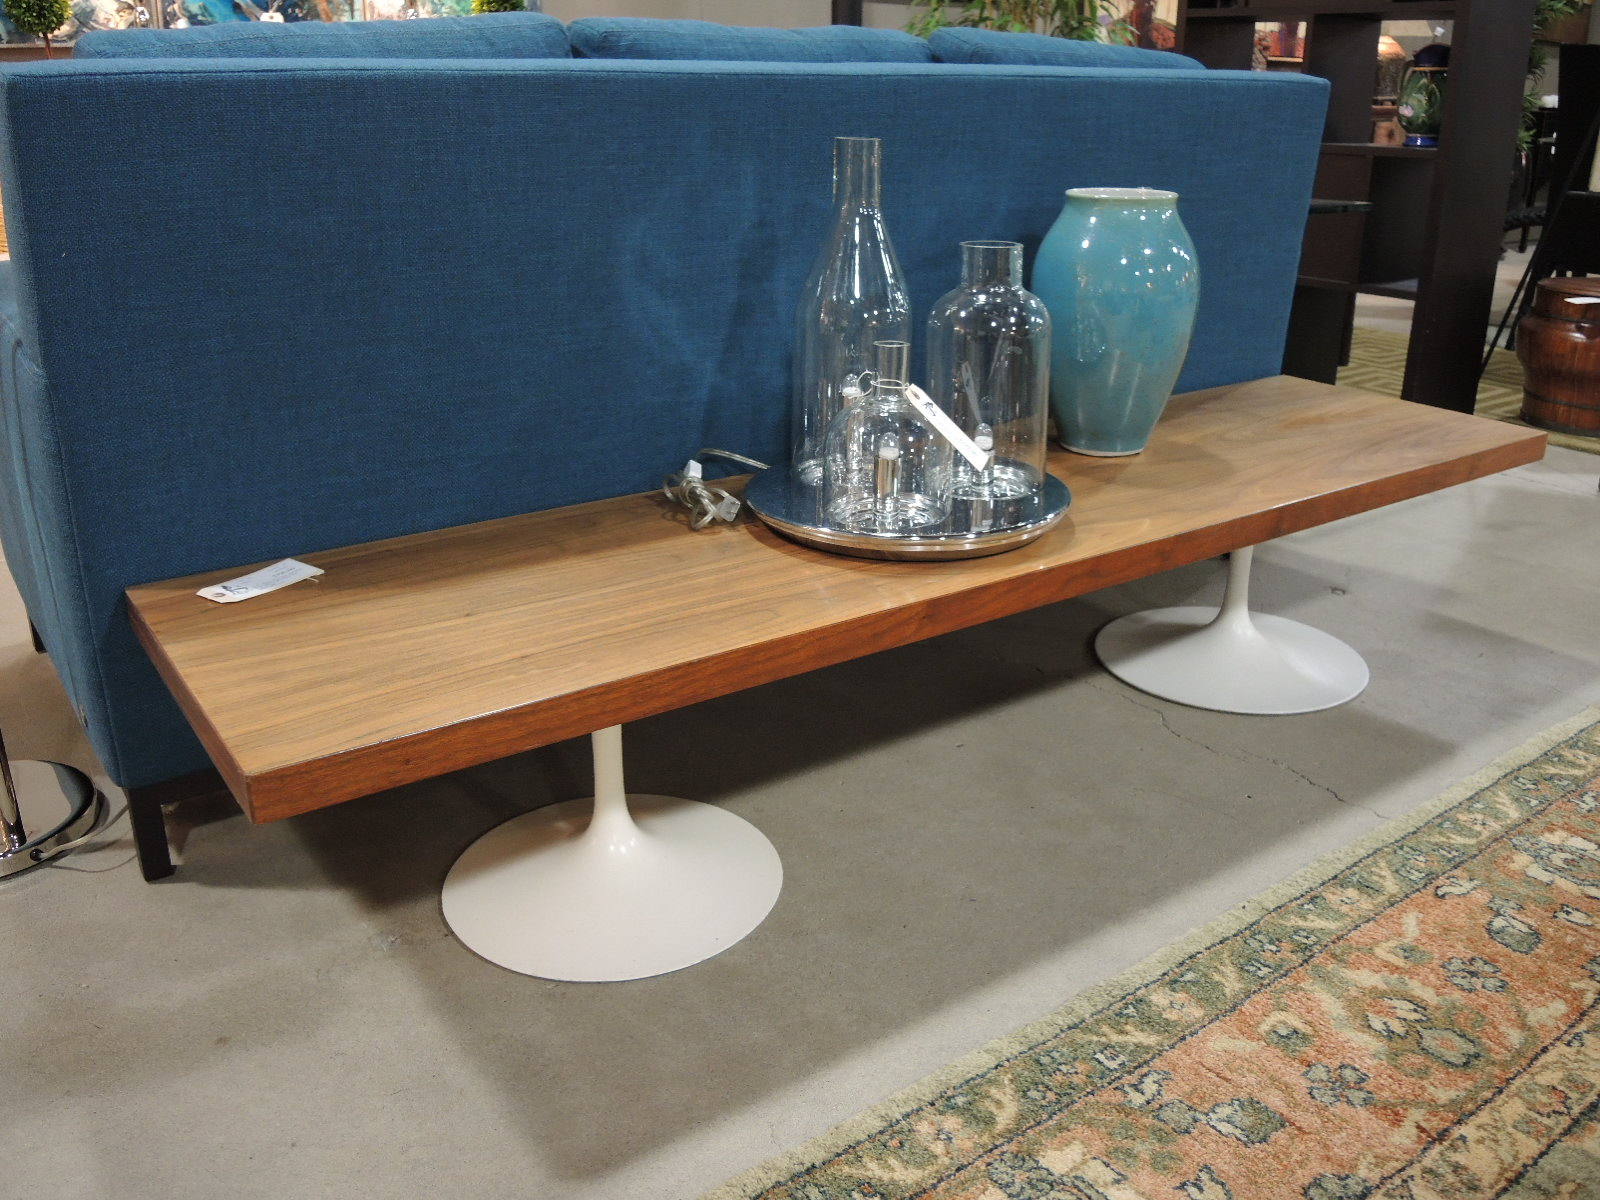 Another Incredibly Unique Piece In Our Showroom Is This Solid Wood Bench  With A Rich Walnut Veneer From The 1950s. Two White, Vintage Saarinen Style  ...